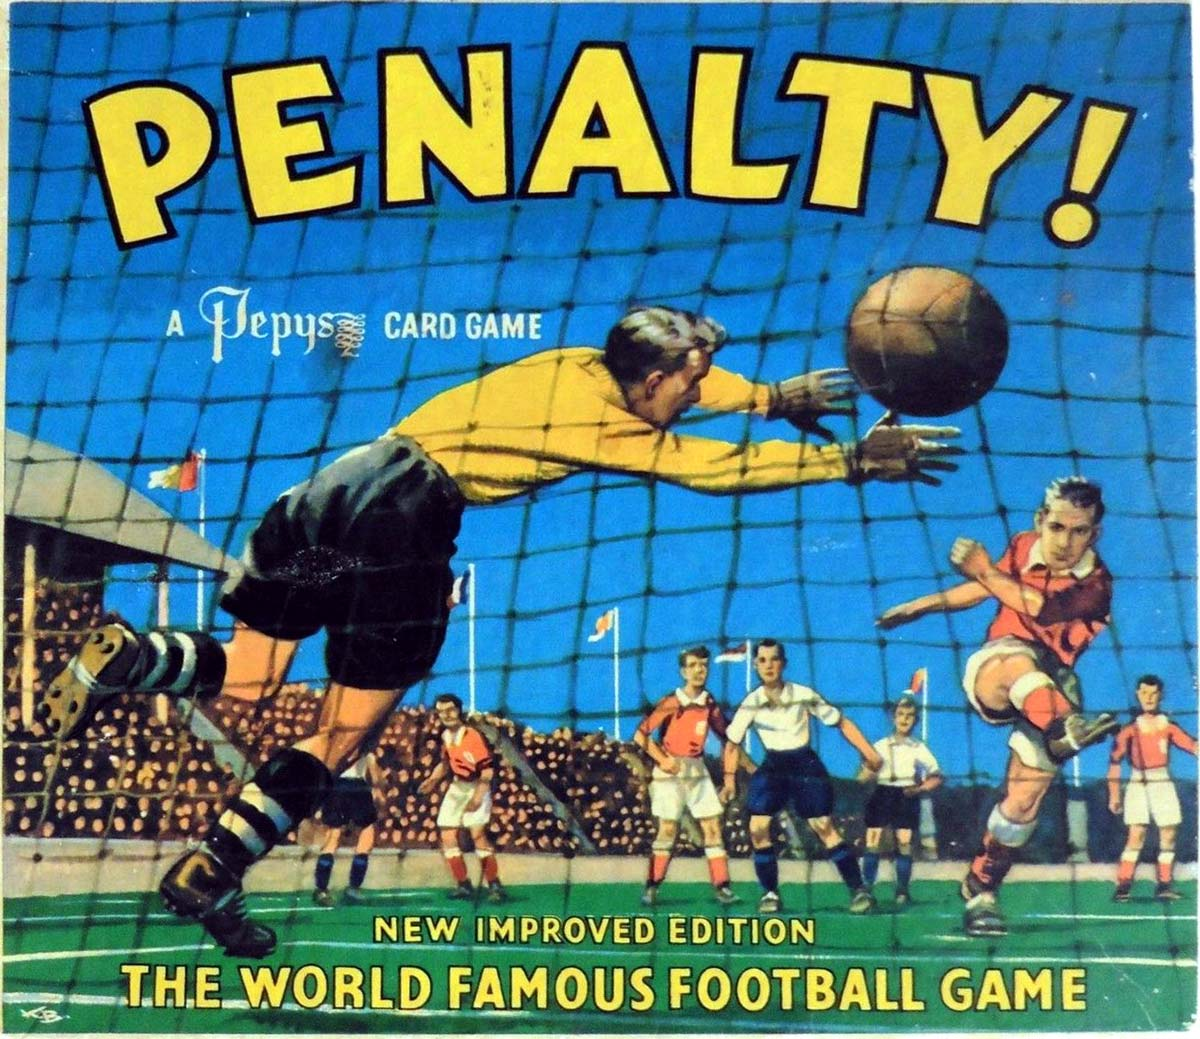 Penalty was invented by Ernesto Scoia of Milan and published the UK by Pepys in the 1960s